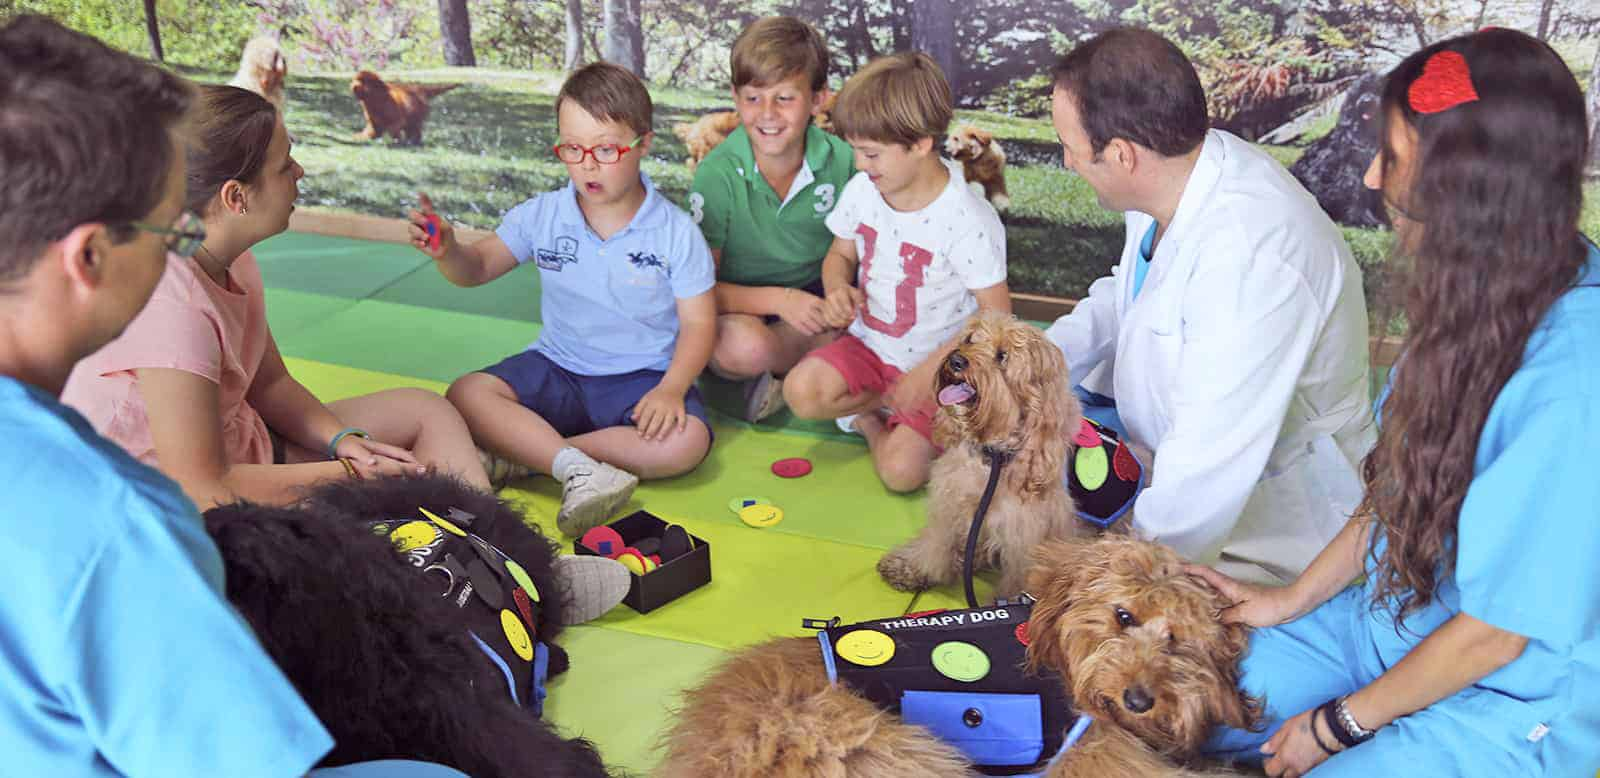 No other breed has better qualities than the Australian Cobberdogs to be an exemplary therapy or assistance dog